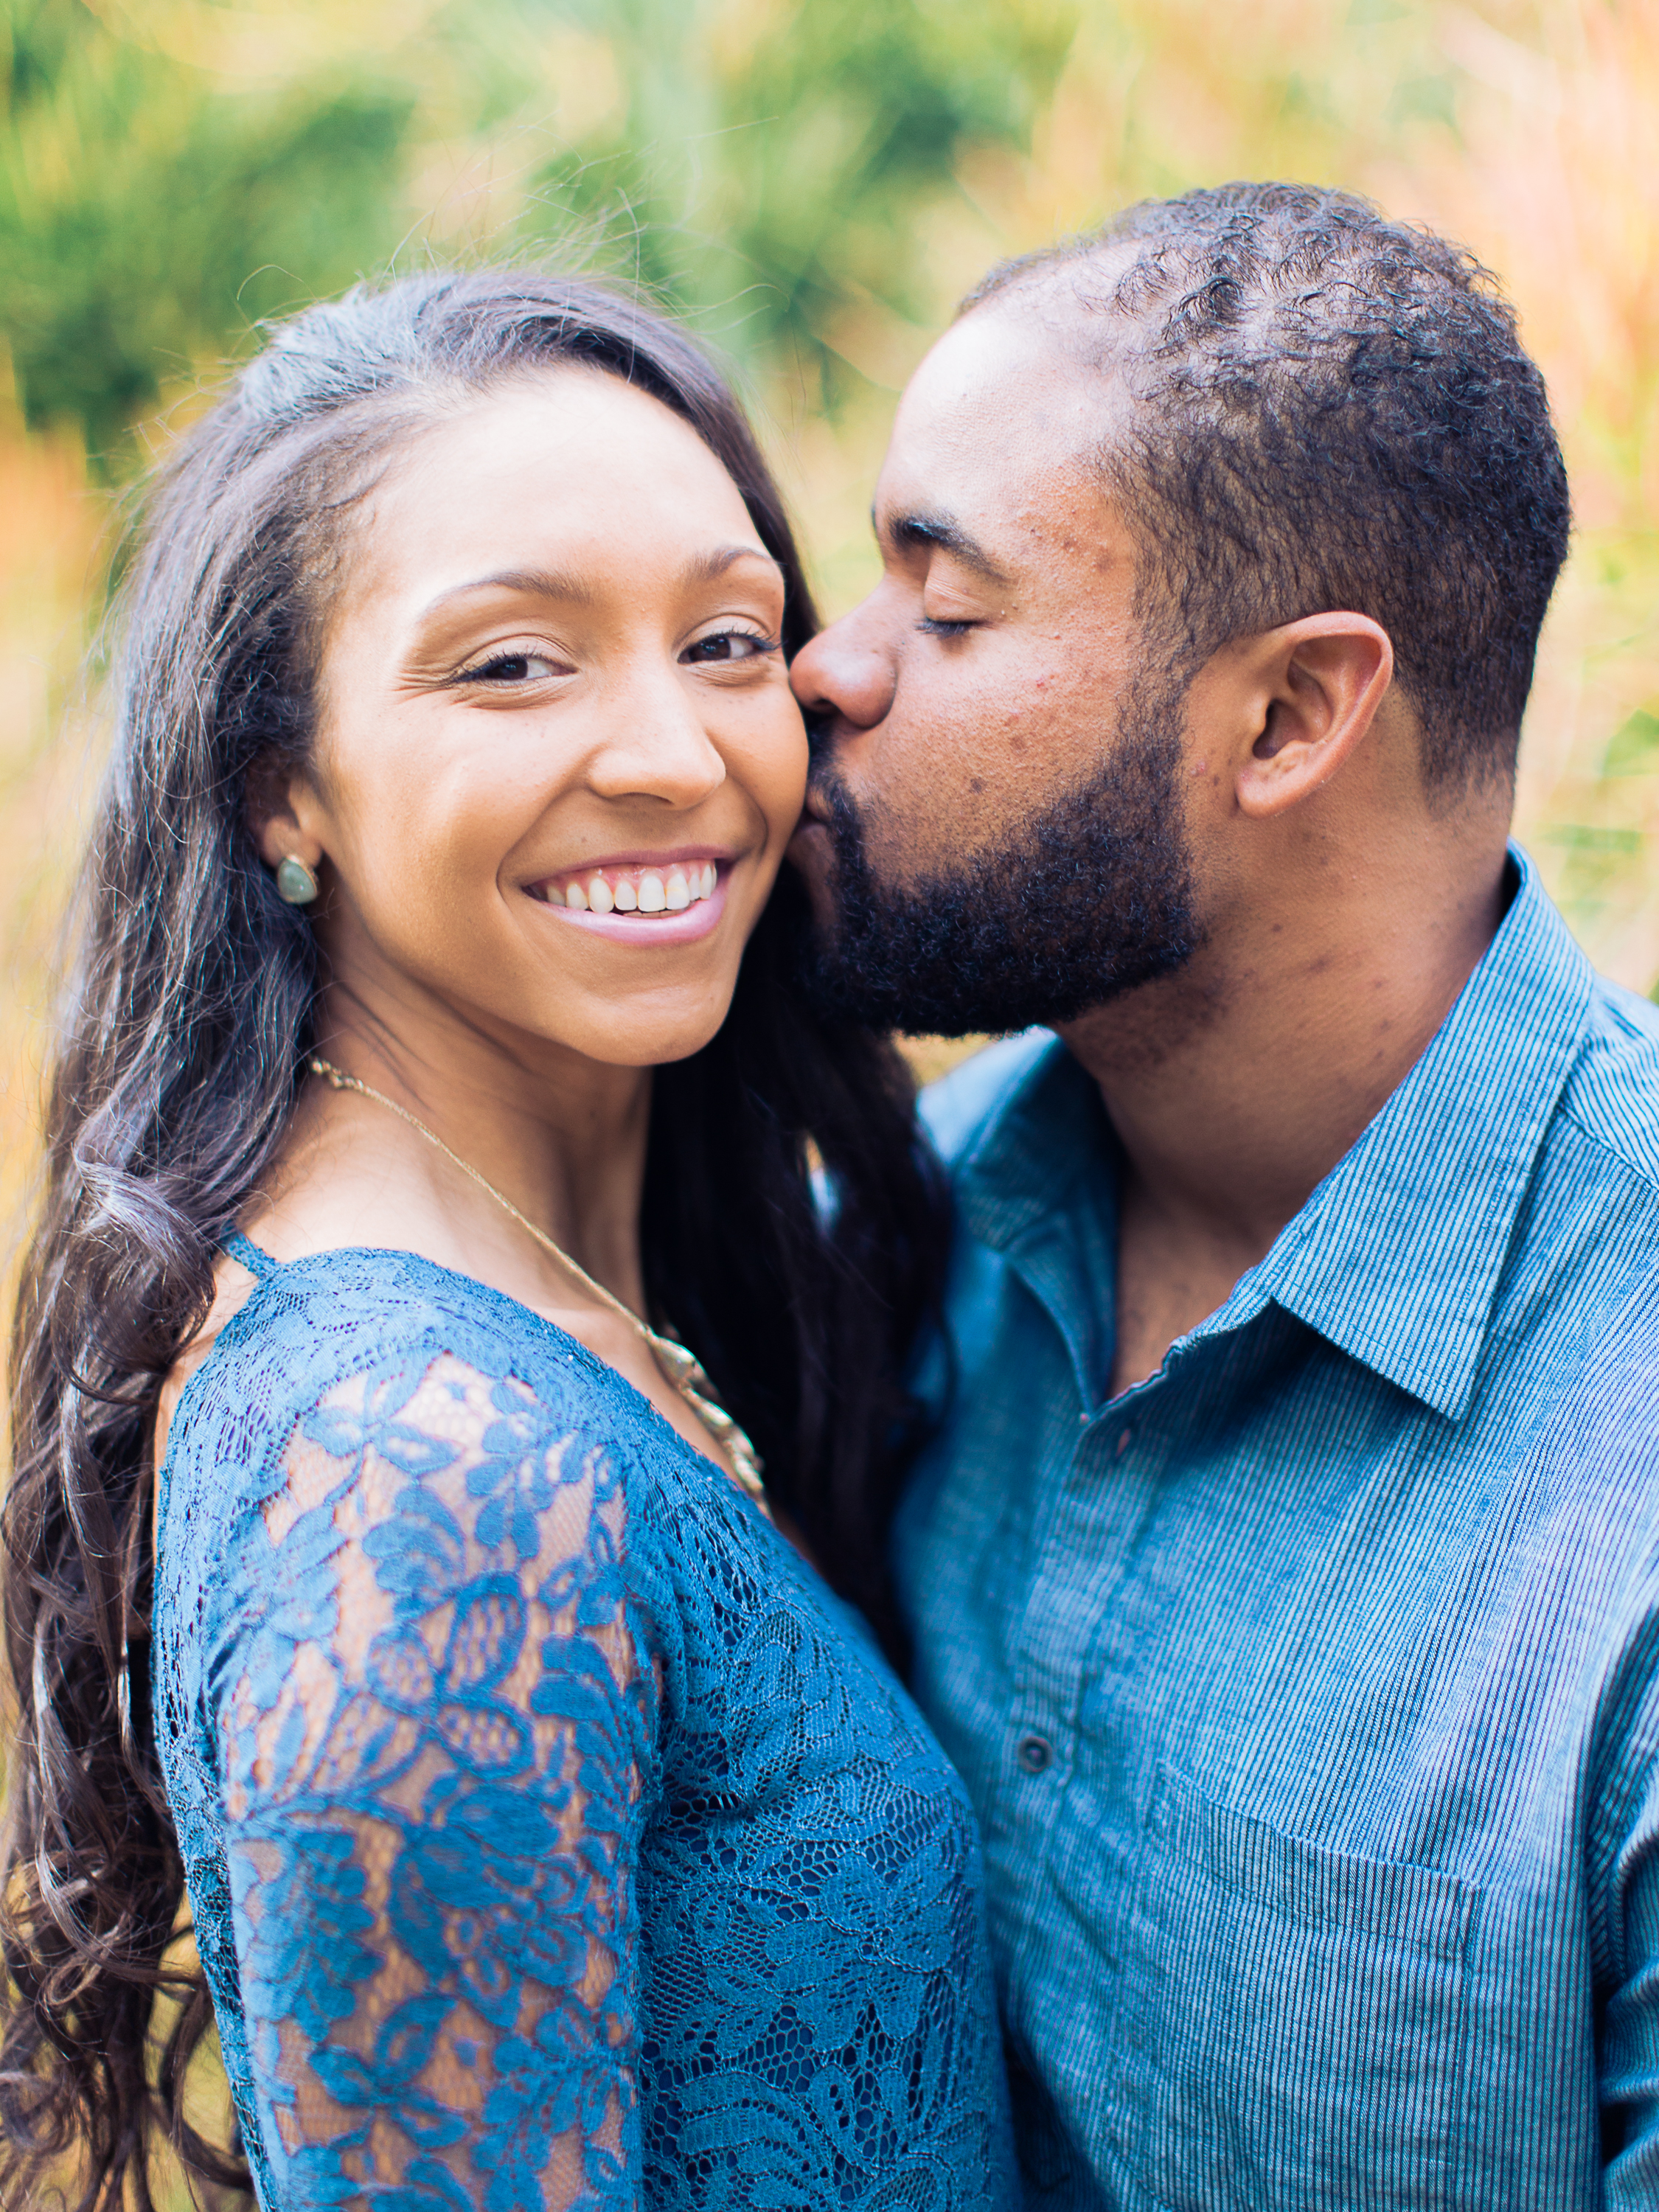 Christa and Greg Engagement_Brandon J Ferlin Photography-5.jpg